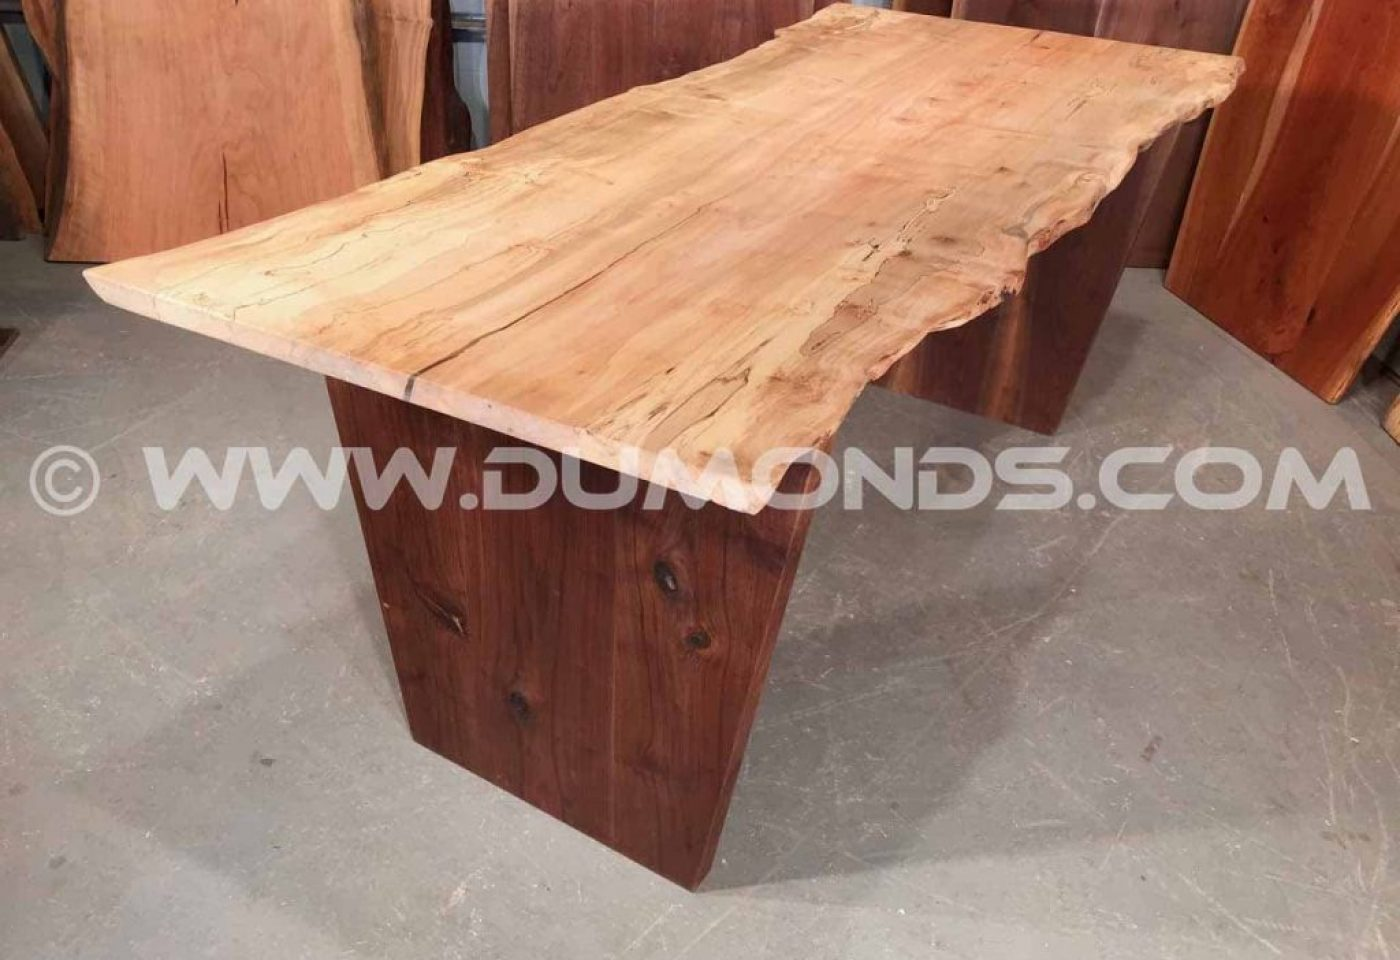 WASHINGTON, DC CURLY SPALTED MAPLE TABLE WITH WALNUT BASE